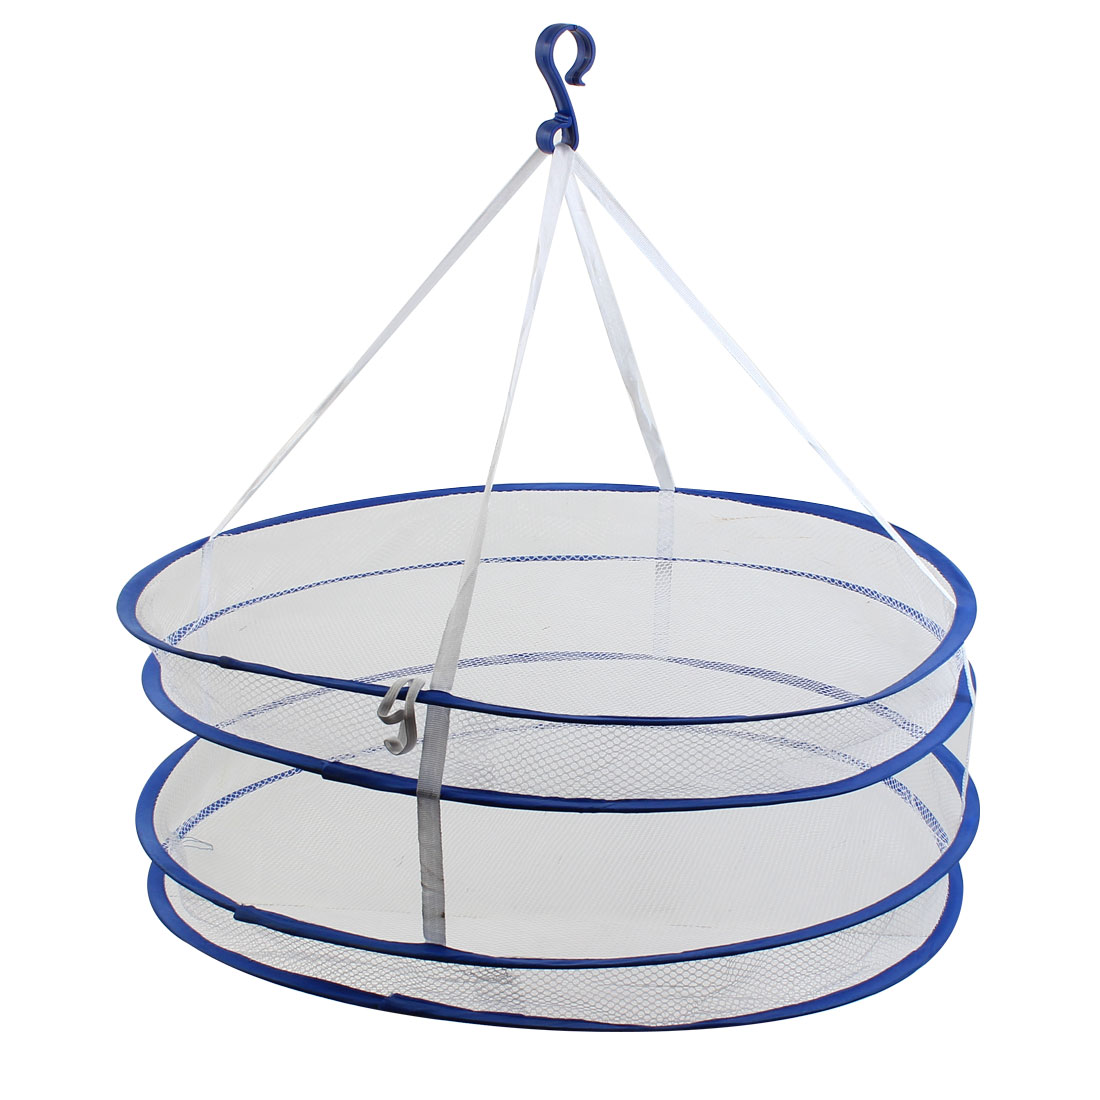 Household Double Layers Folding Windproof Clothes Sweater Laundry Basket Dryer Rack Hanging Hanger Net 57cm Dia